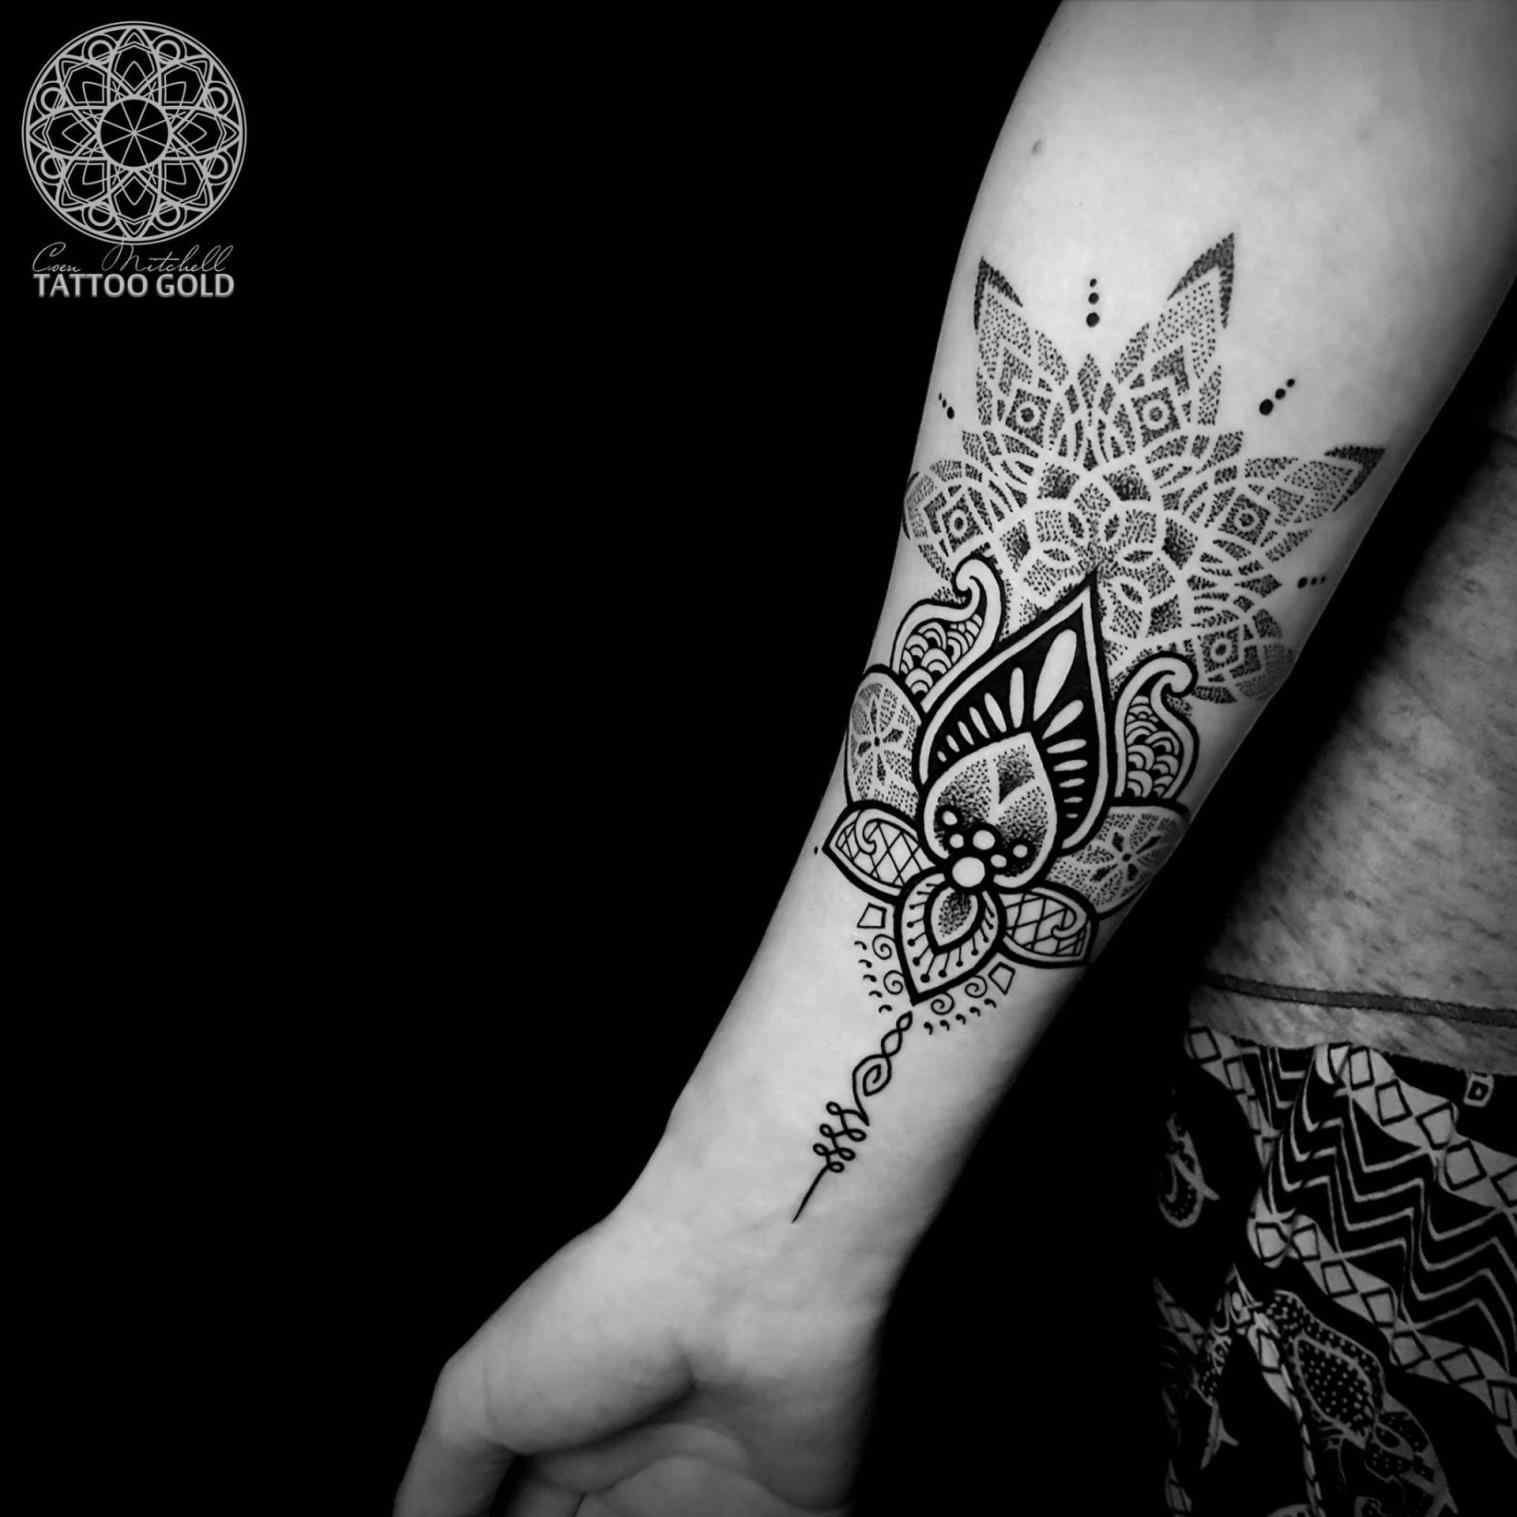 Tattoo Mandala Arm Tattoos For Women Ornaments Tattoo Mandala Arm Tattoo Arm Tattoos For Women Tattoos